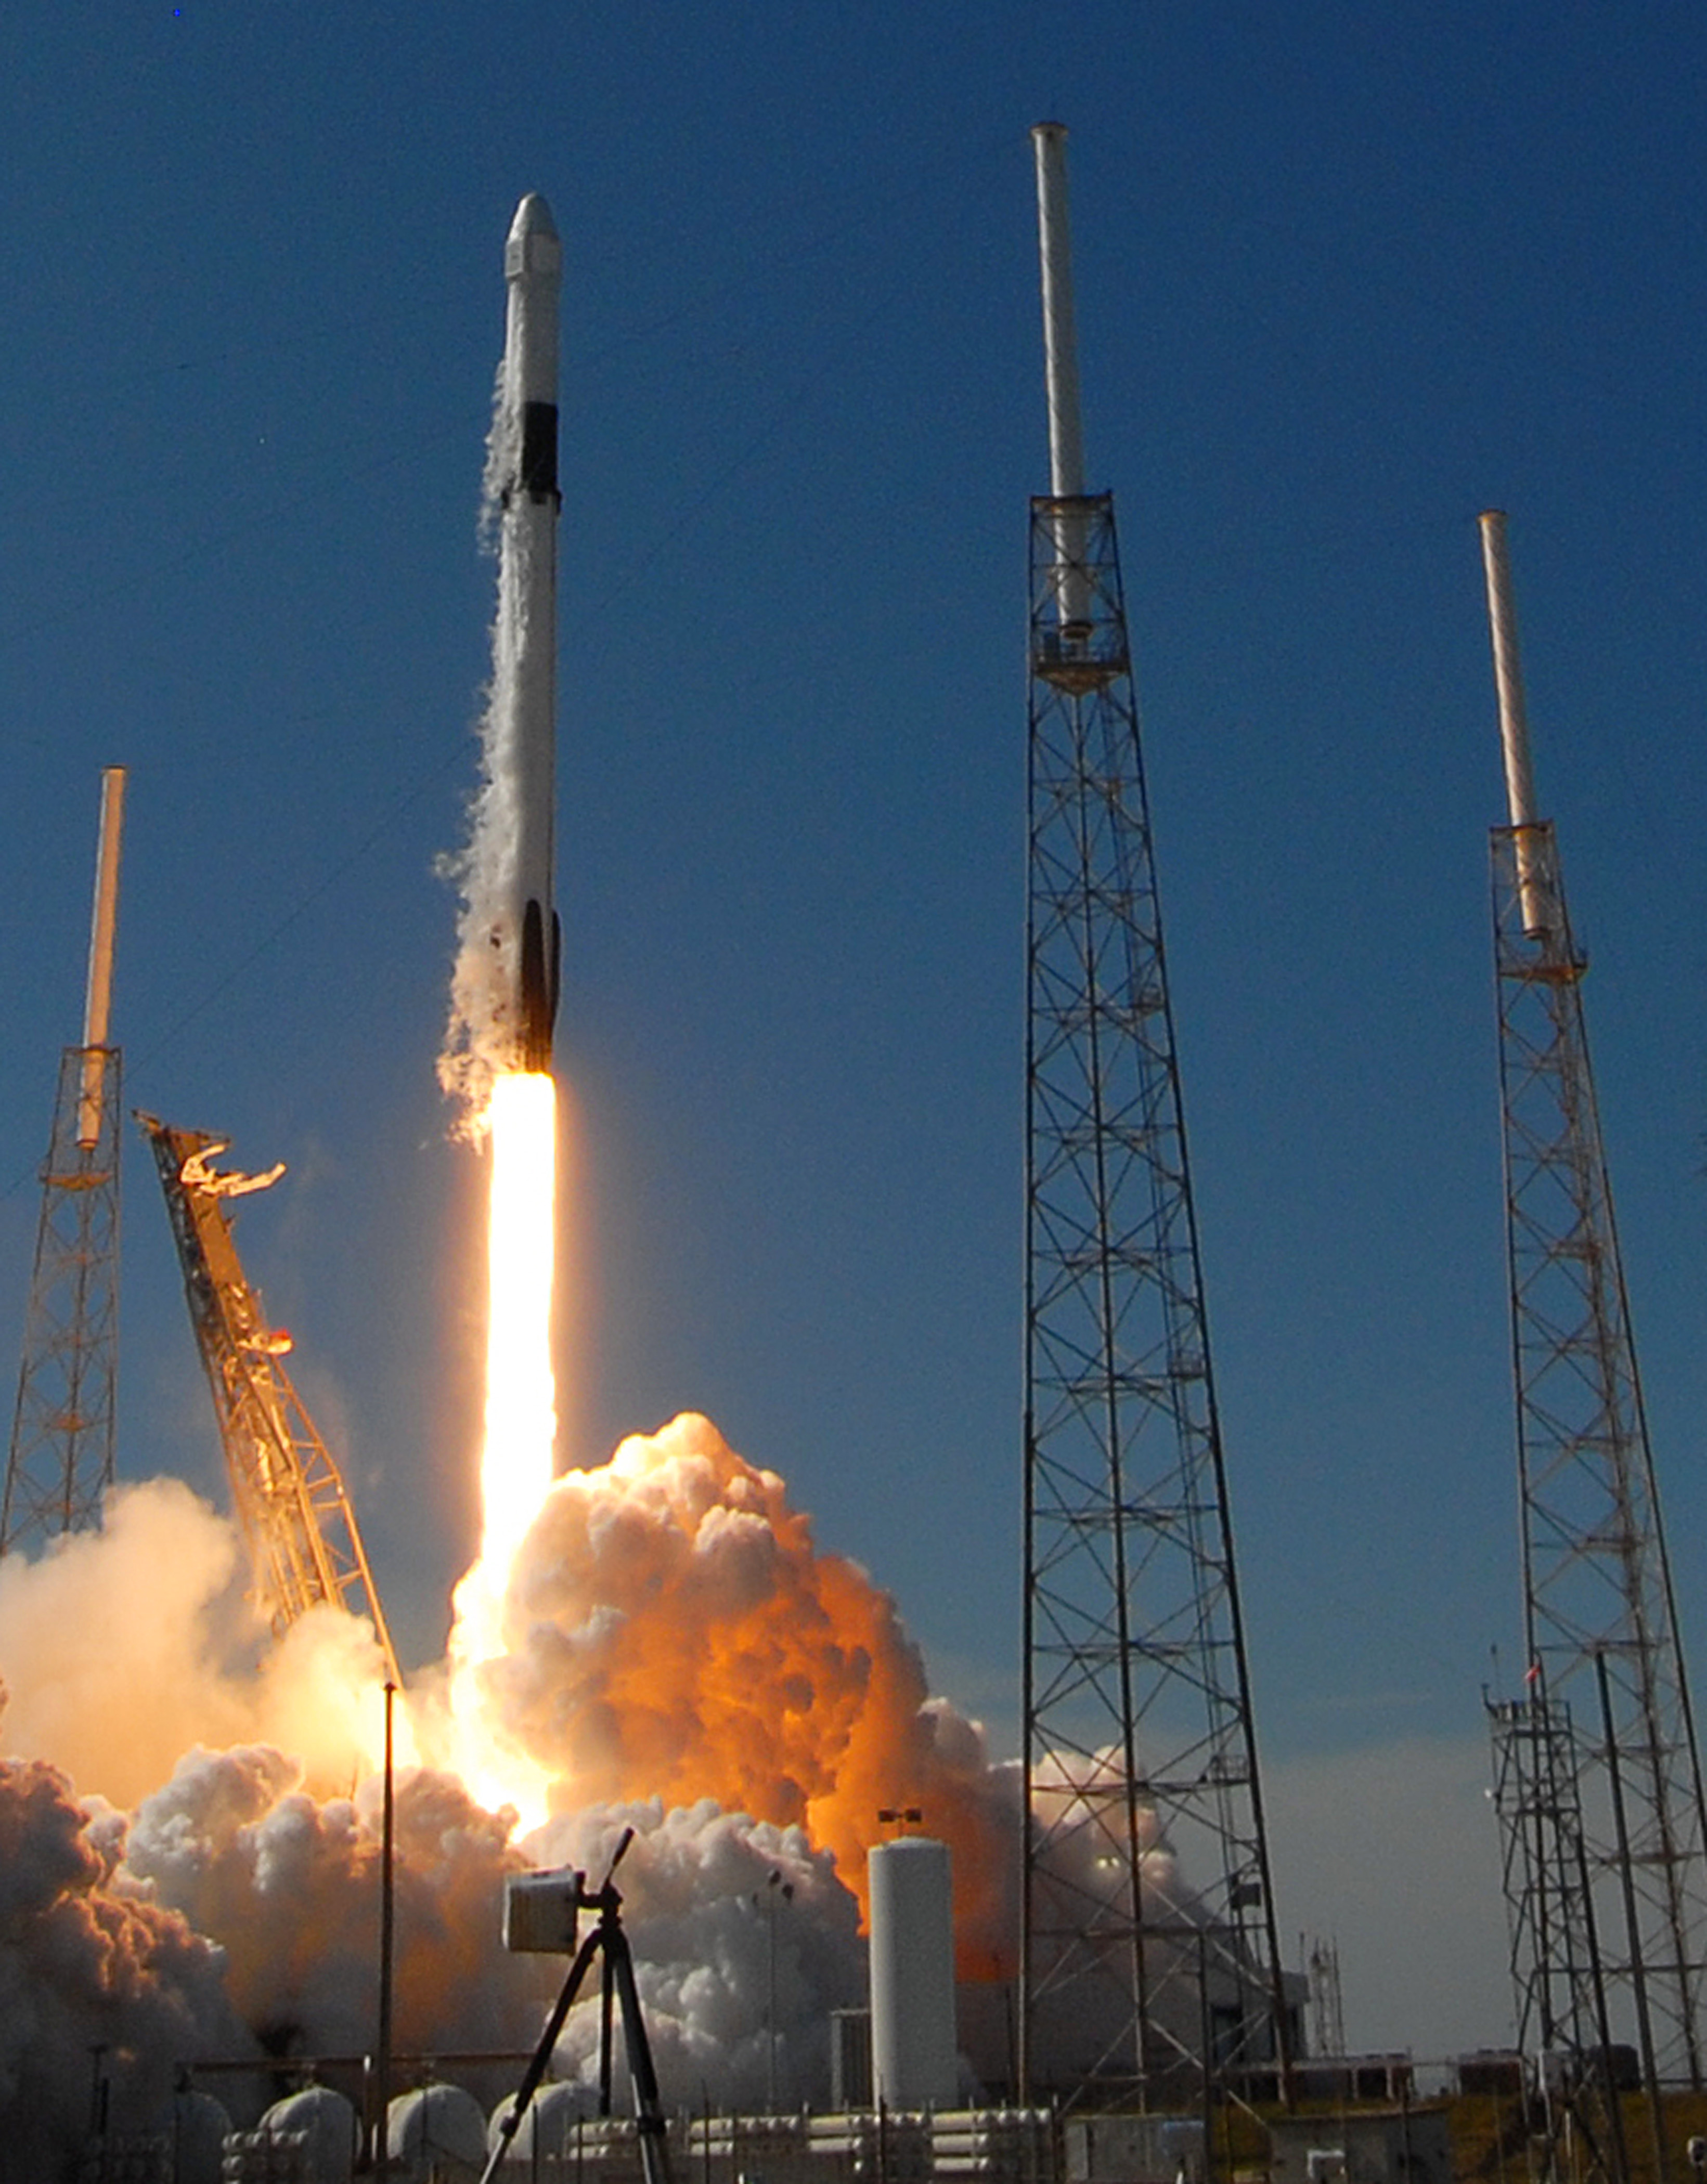 SpaceX Launches Resupply Mission to Space Station from Florida, US